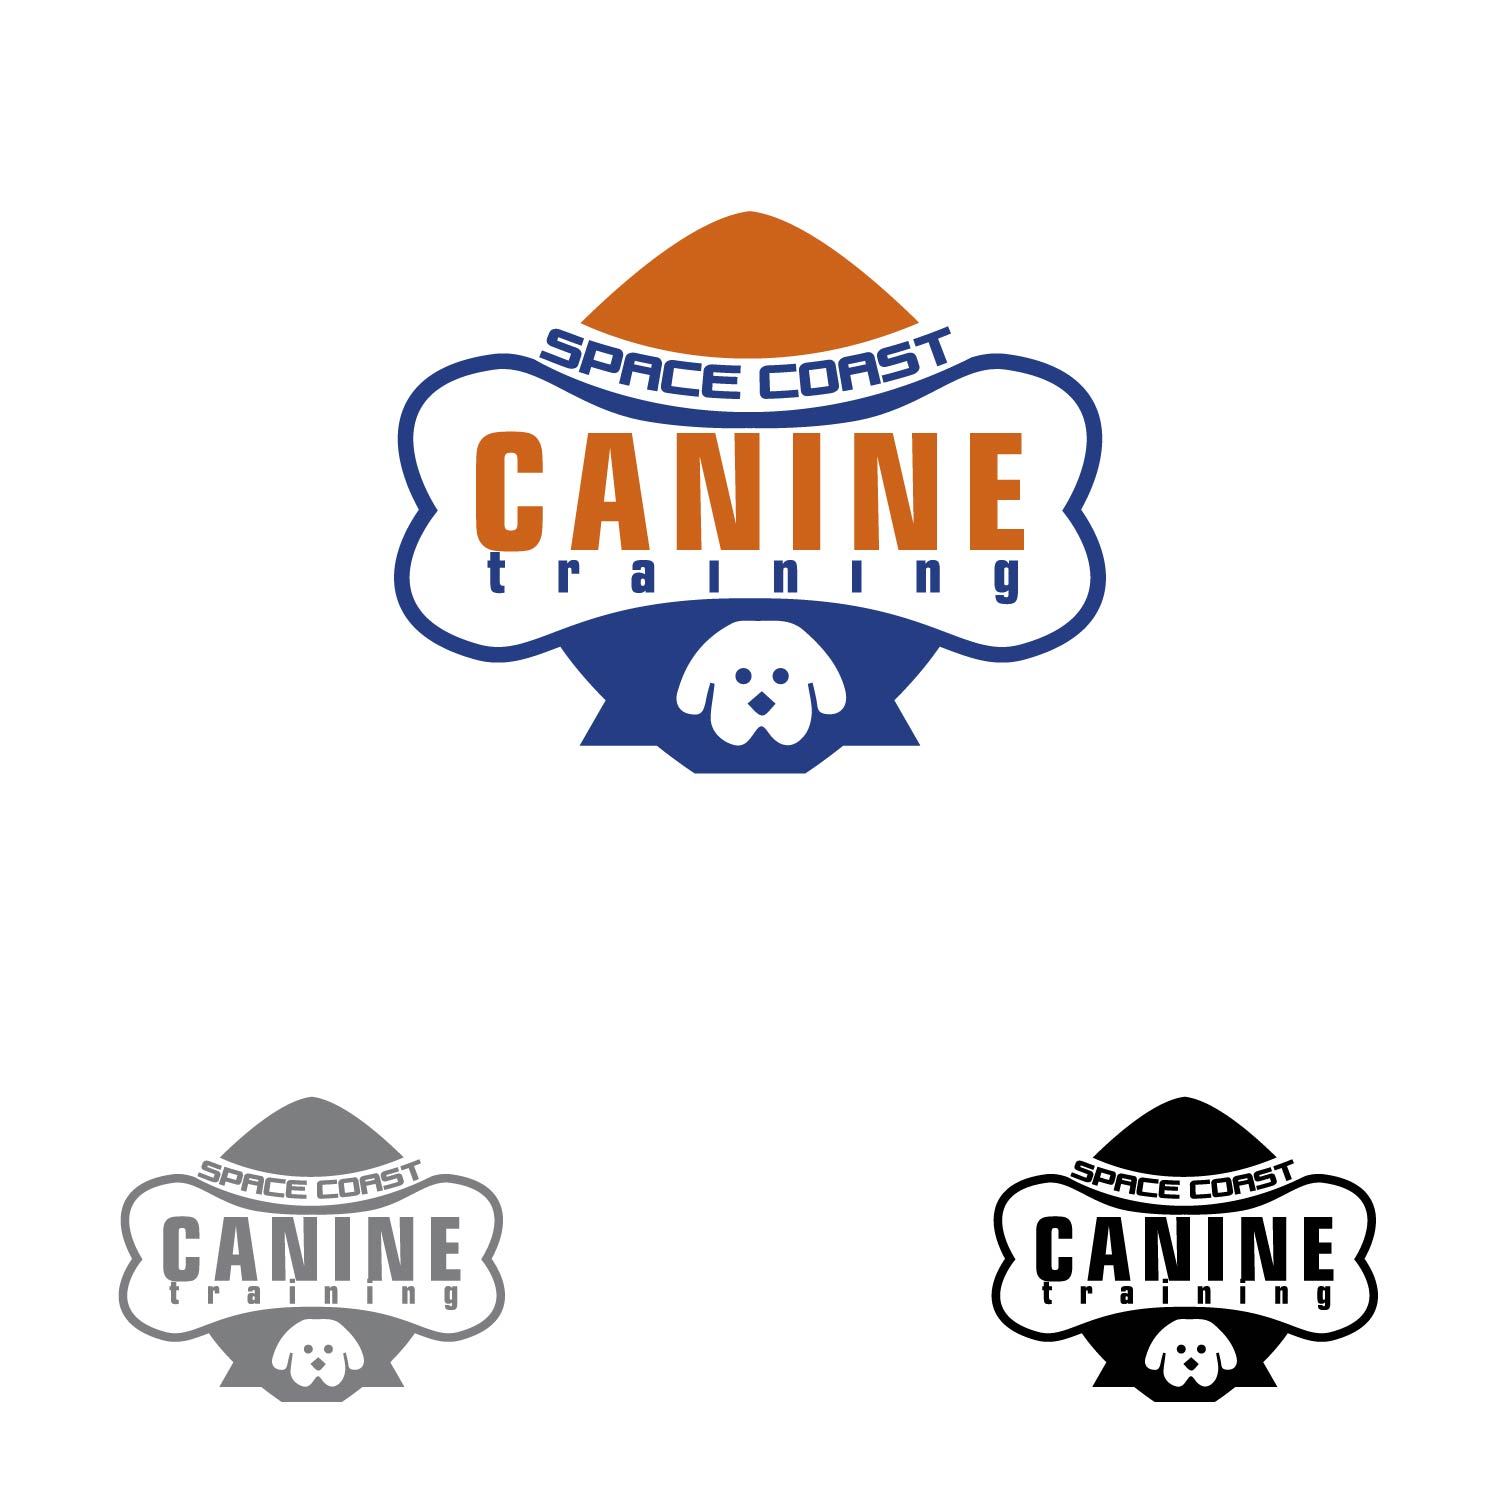 Logo Design by lagalag - Entry No. 19 in the Logo Design Contest Creative Logo Design for Space Coast Canine Training.